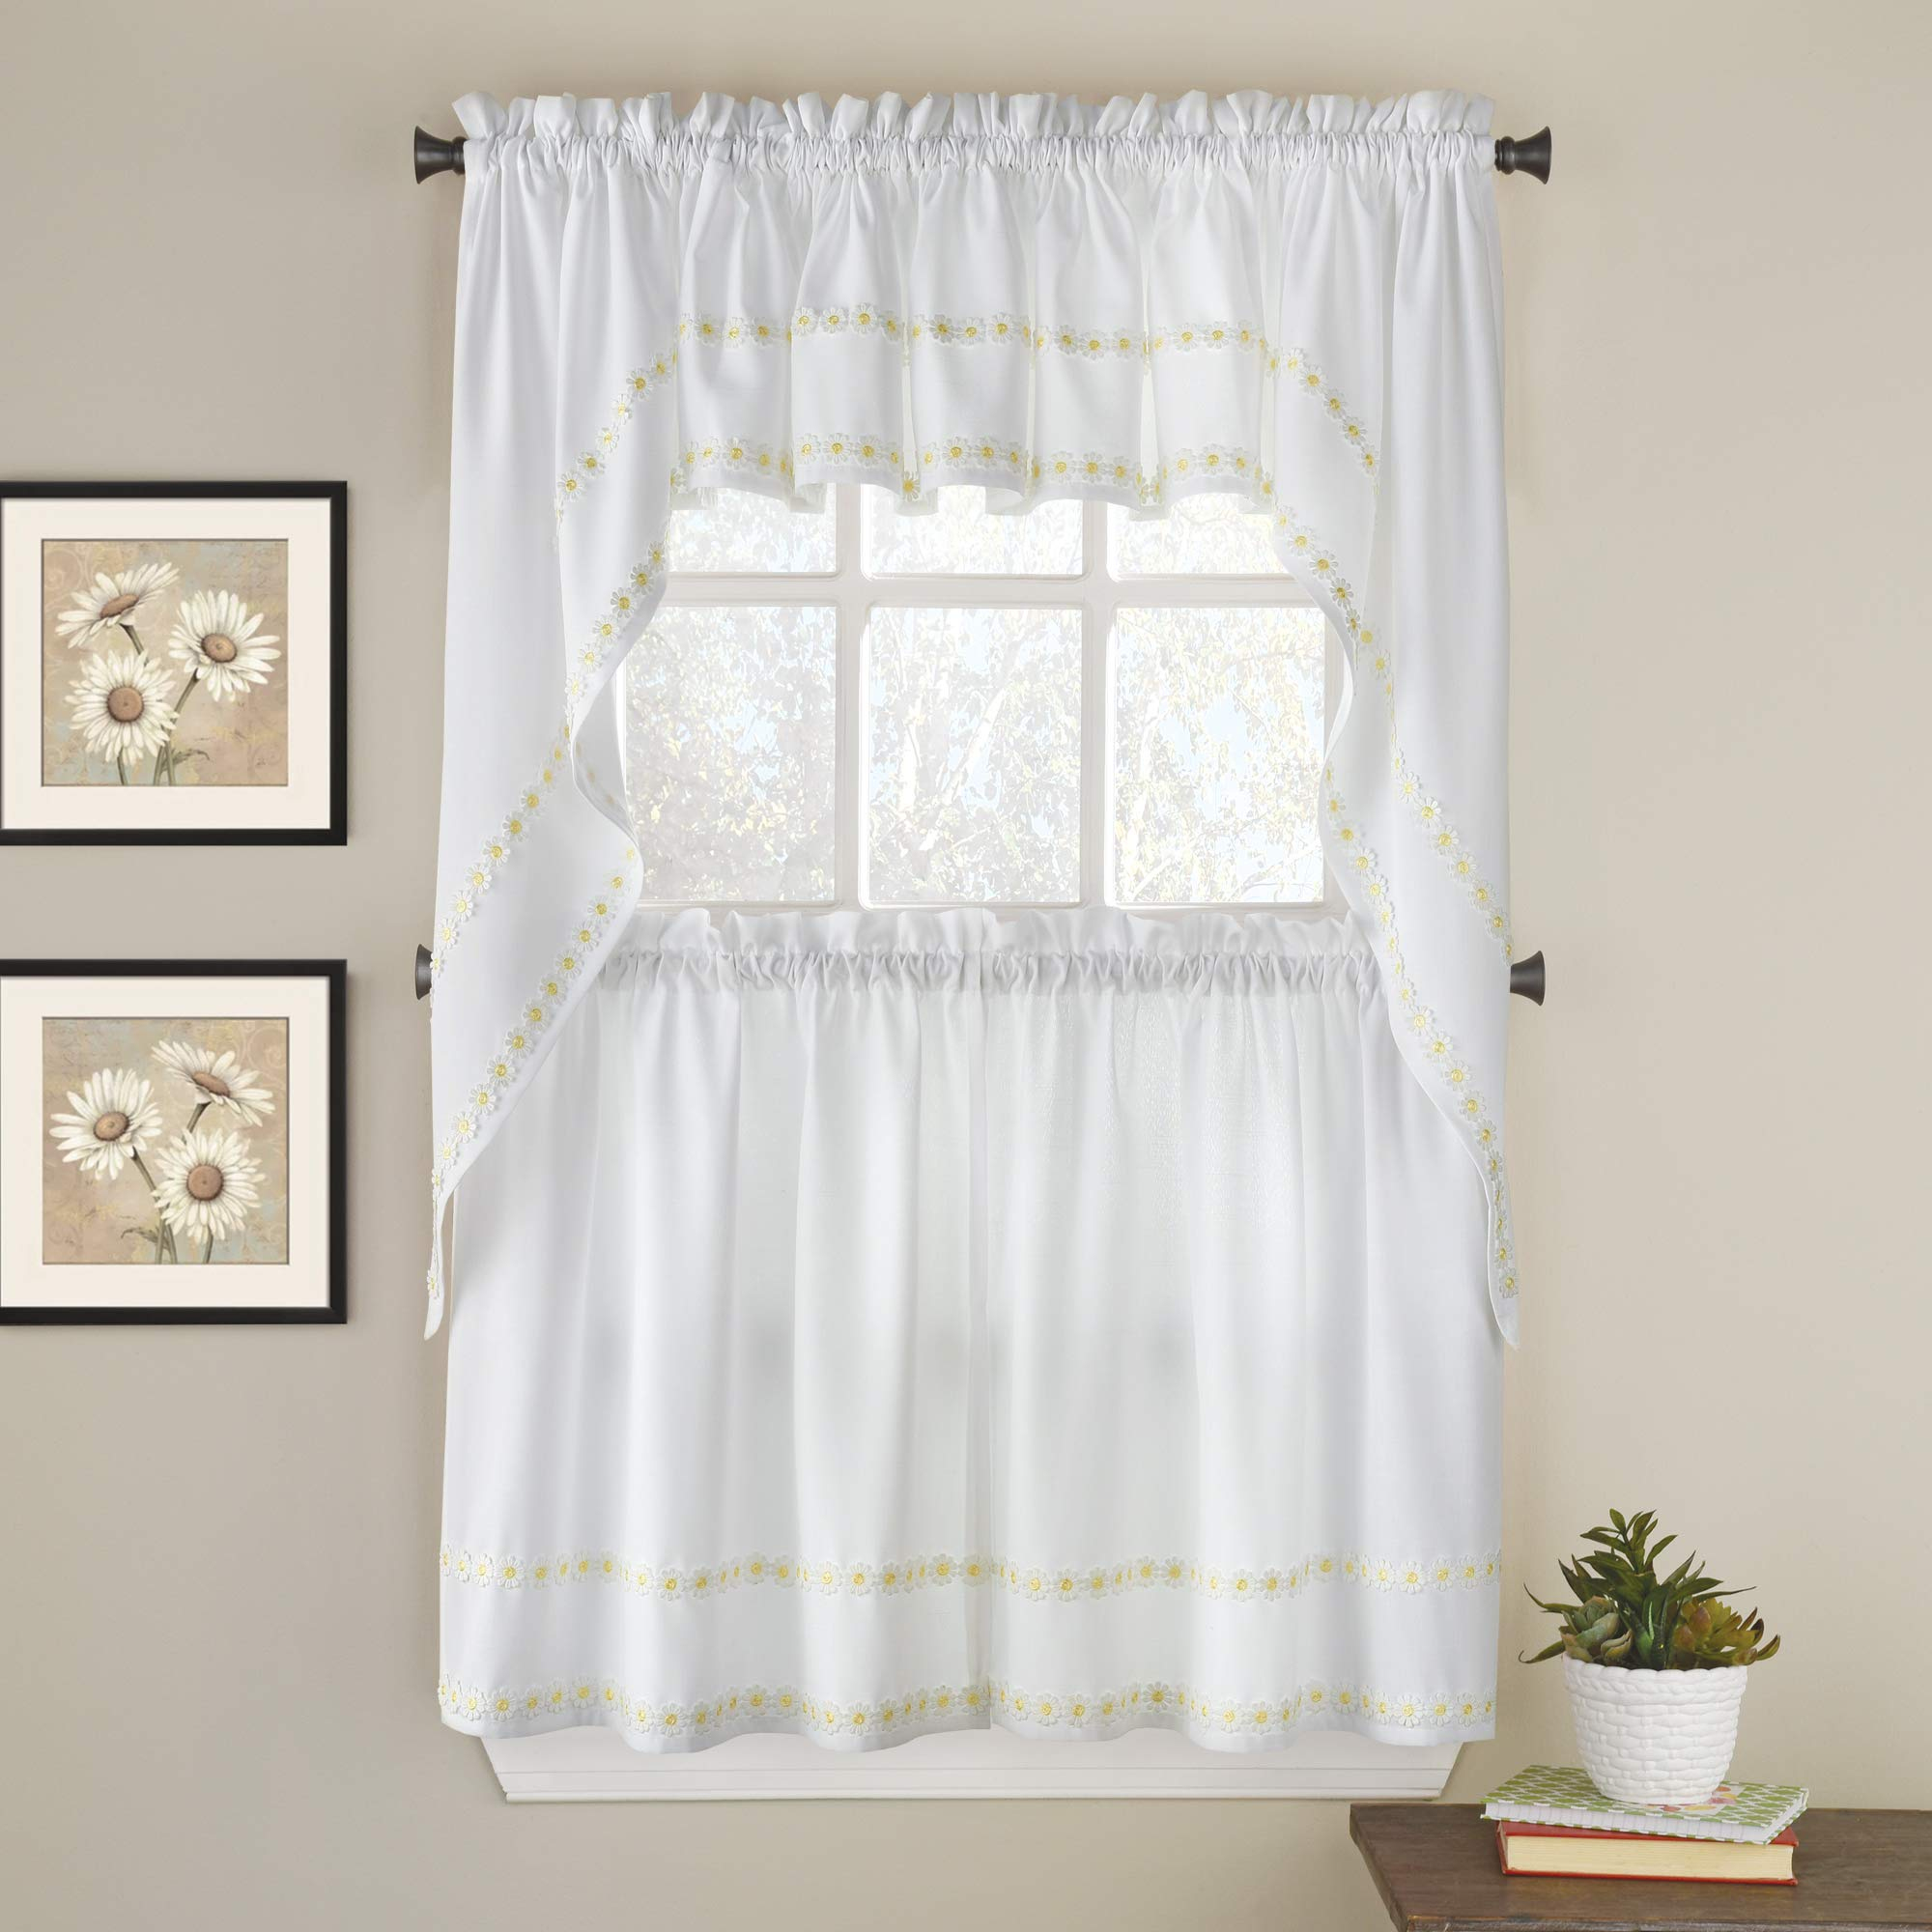 Amazon Com Sweet Home Collection Kitchen Window Curtain 5 Piece Set With Valance Swag And Choice Of 24 Or 36 Tier Pair Daisy Mae Yellow Home Kitchen